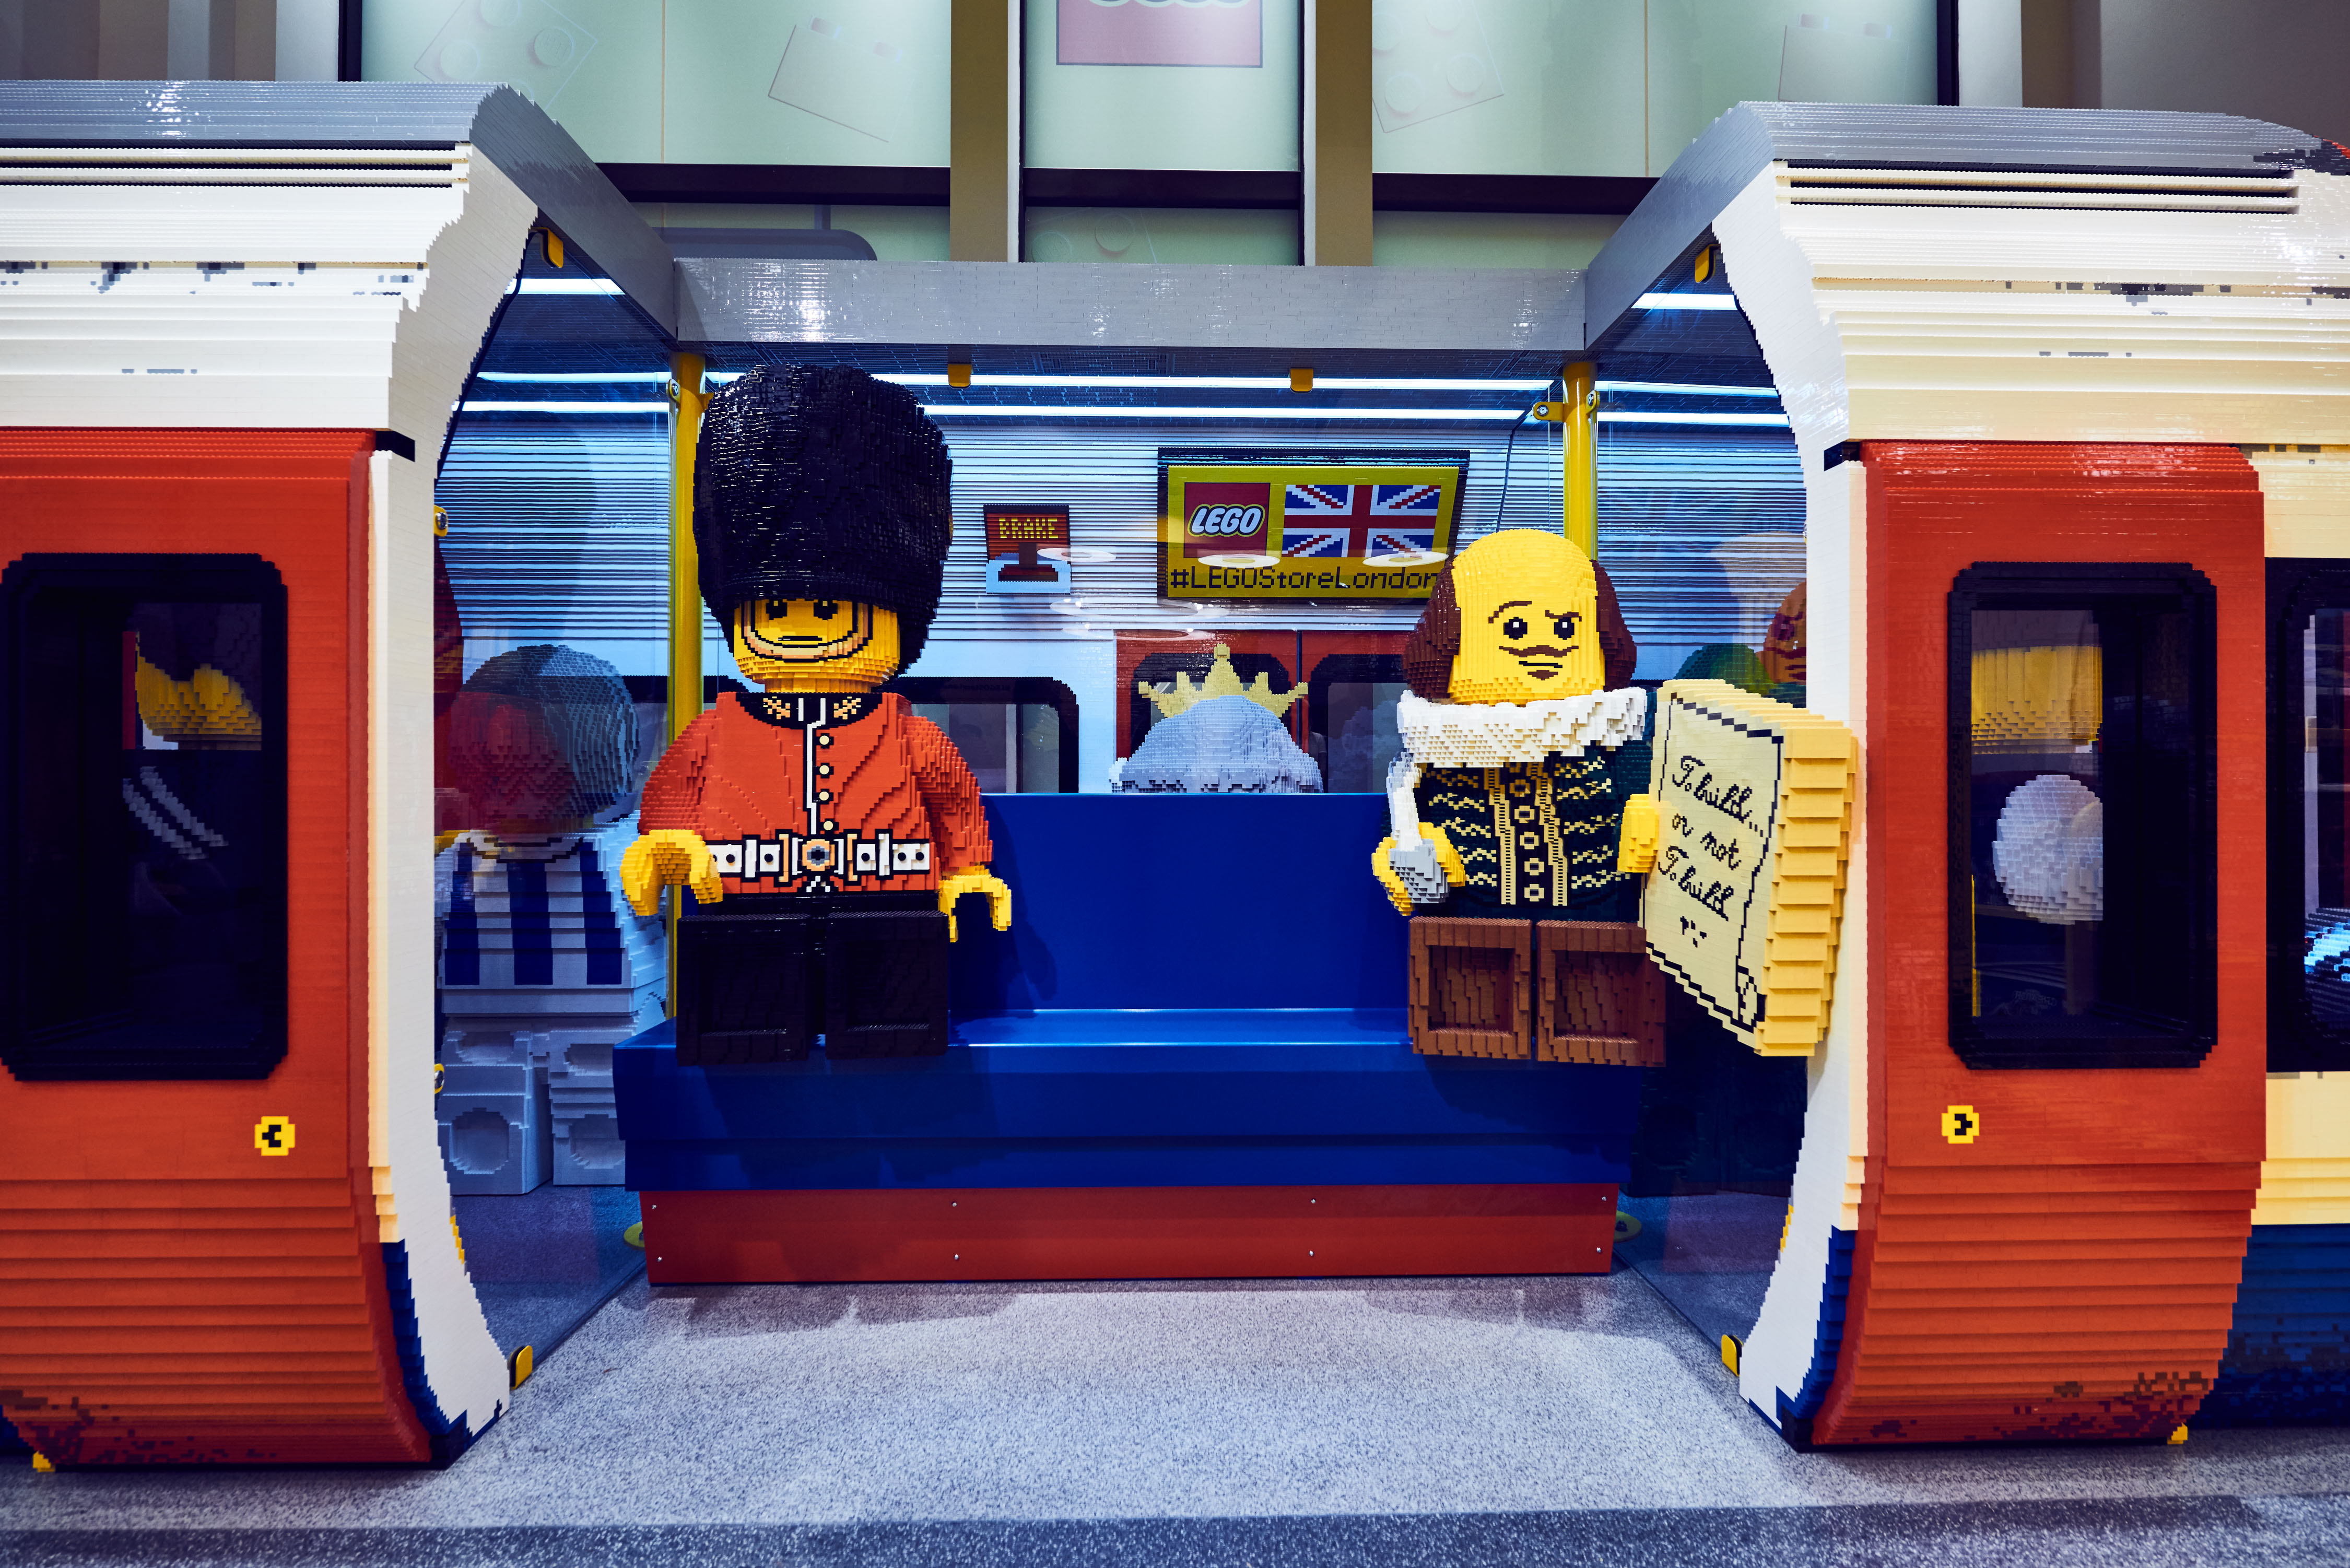 Through a partnership with Transport for London, Lego has created a life-sized London Underground train car. The train car is made up of 637,903 bricks and took 3,399 hours to build.